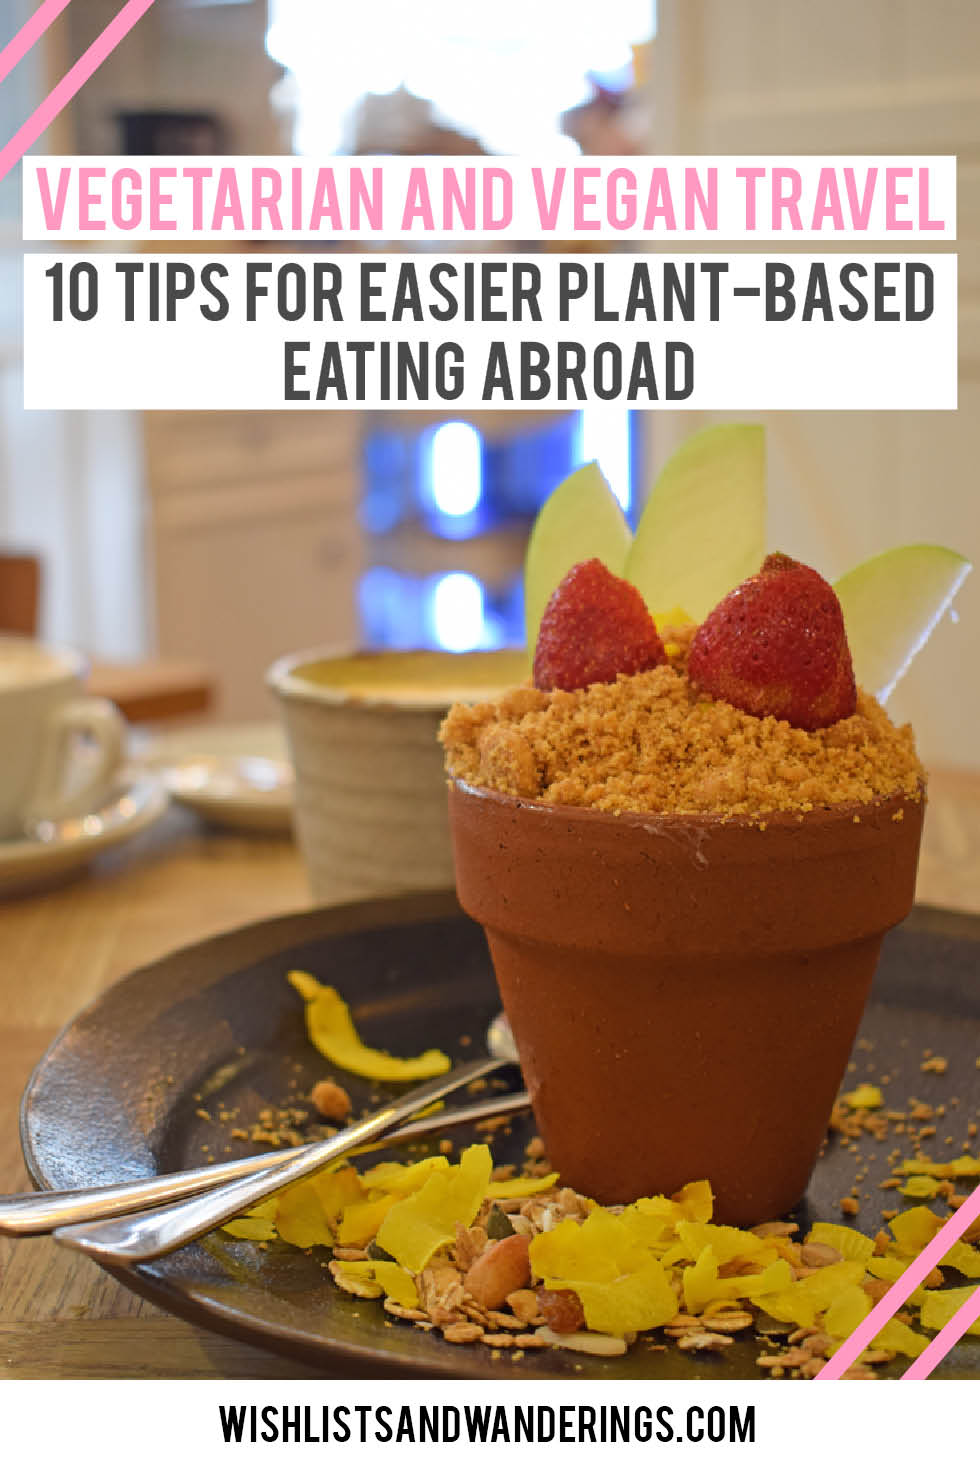 Off to explore a new country but worried about locating vegetarian or vegan food? Don't stress. Here are some tips forfinding plant based food, navigating foreign menus, and avoiding hangry spells when you're travelling.